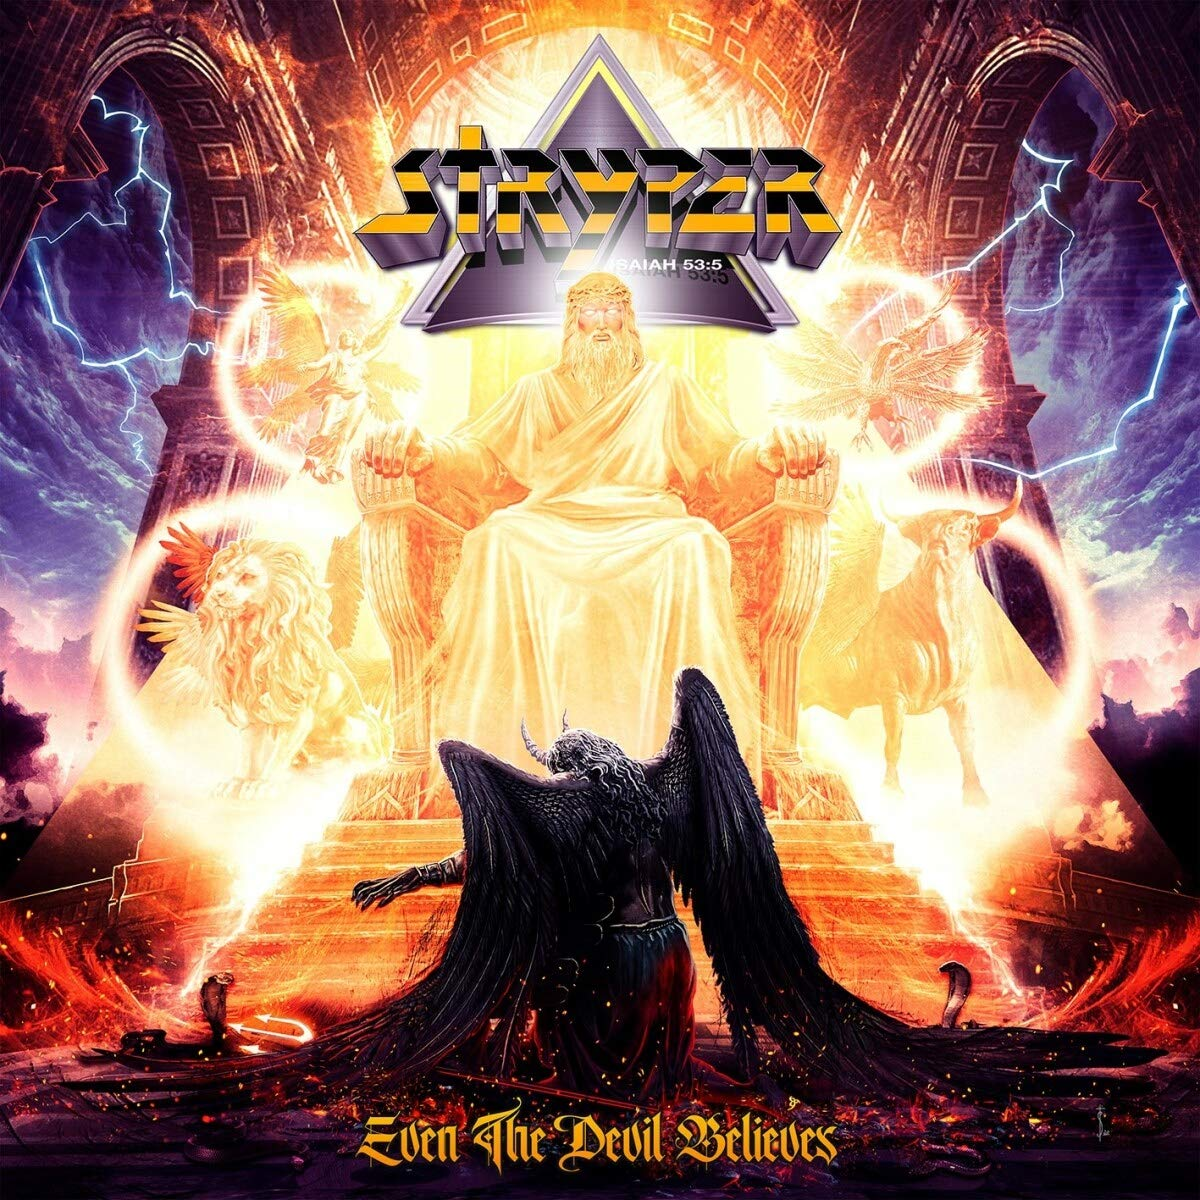 stryper-die-frommen-diener-des-rock-predigen-wieder-cd-review-even-the-devil-believes